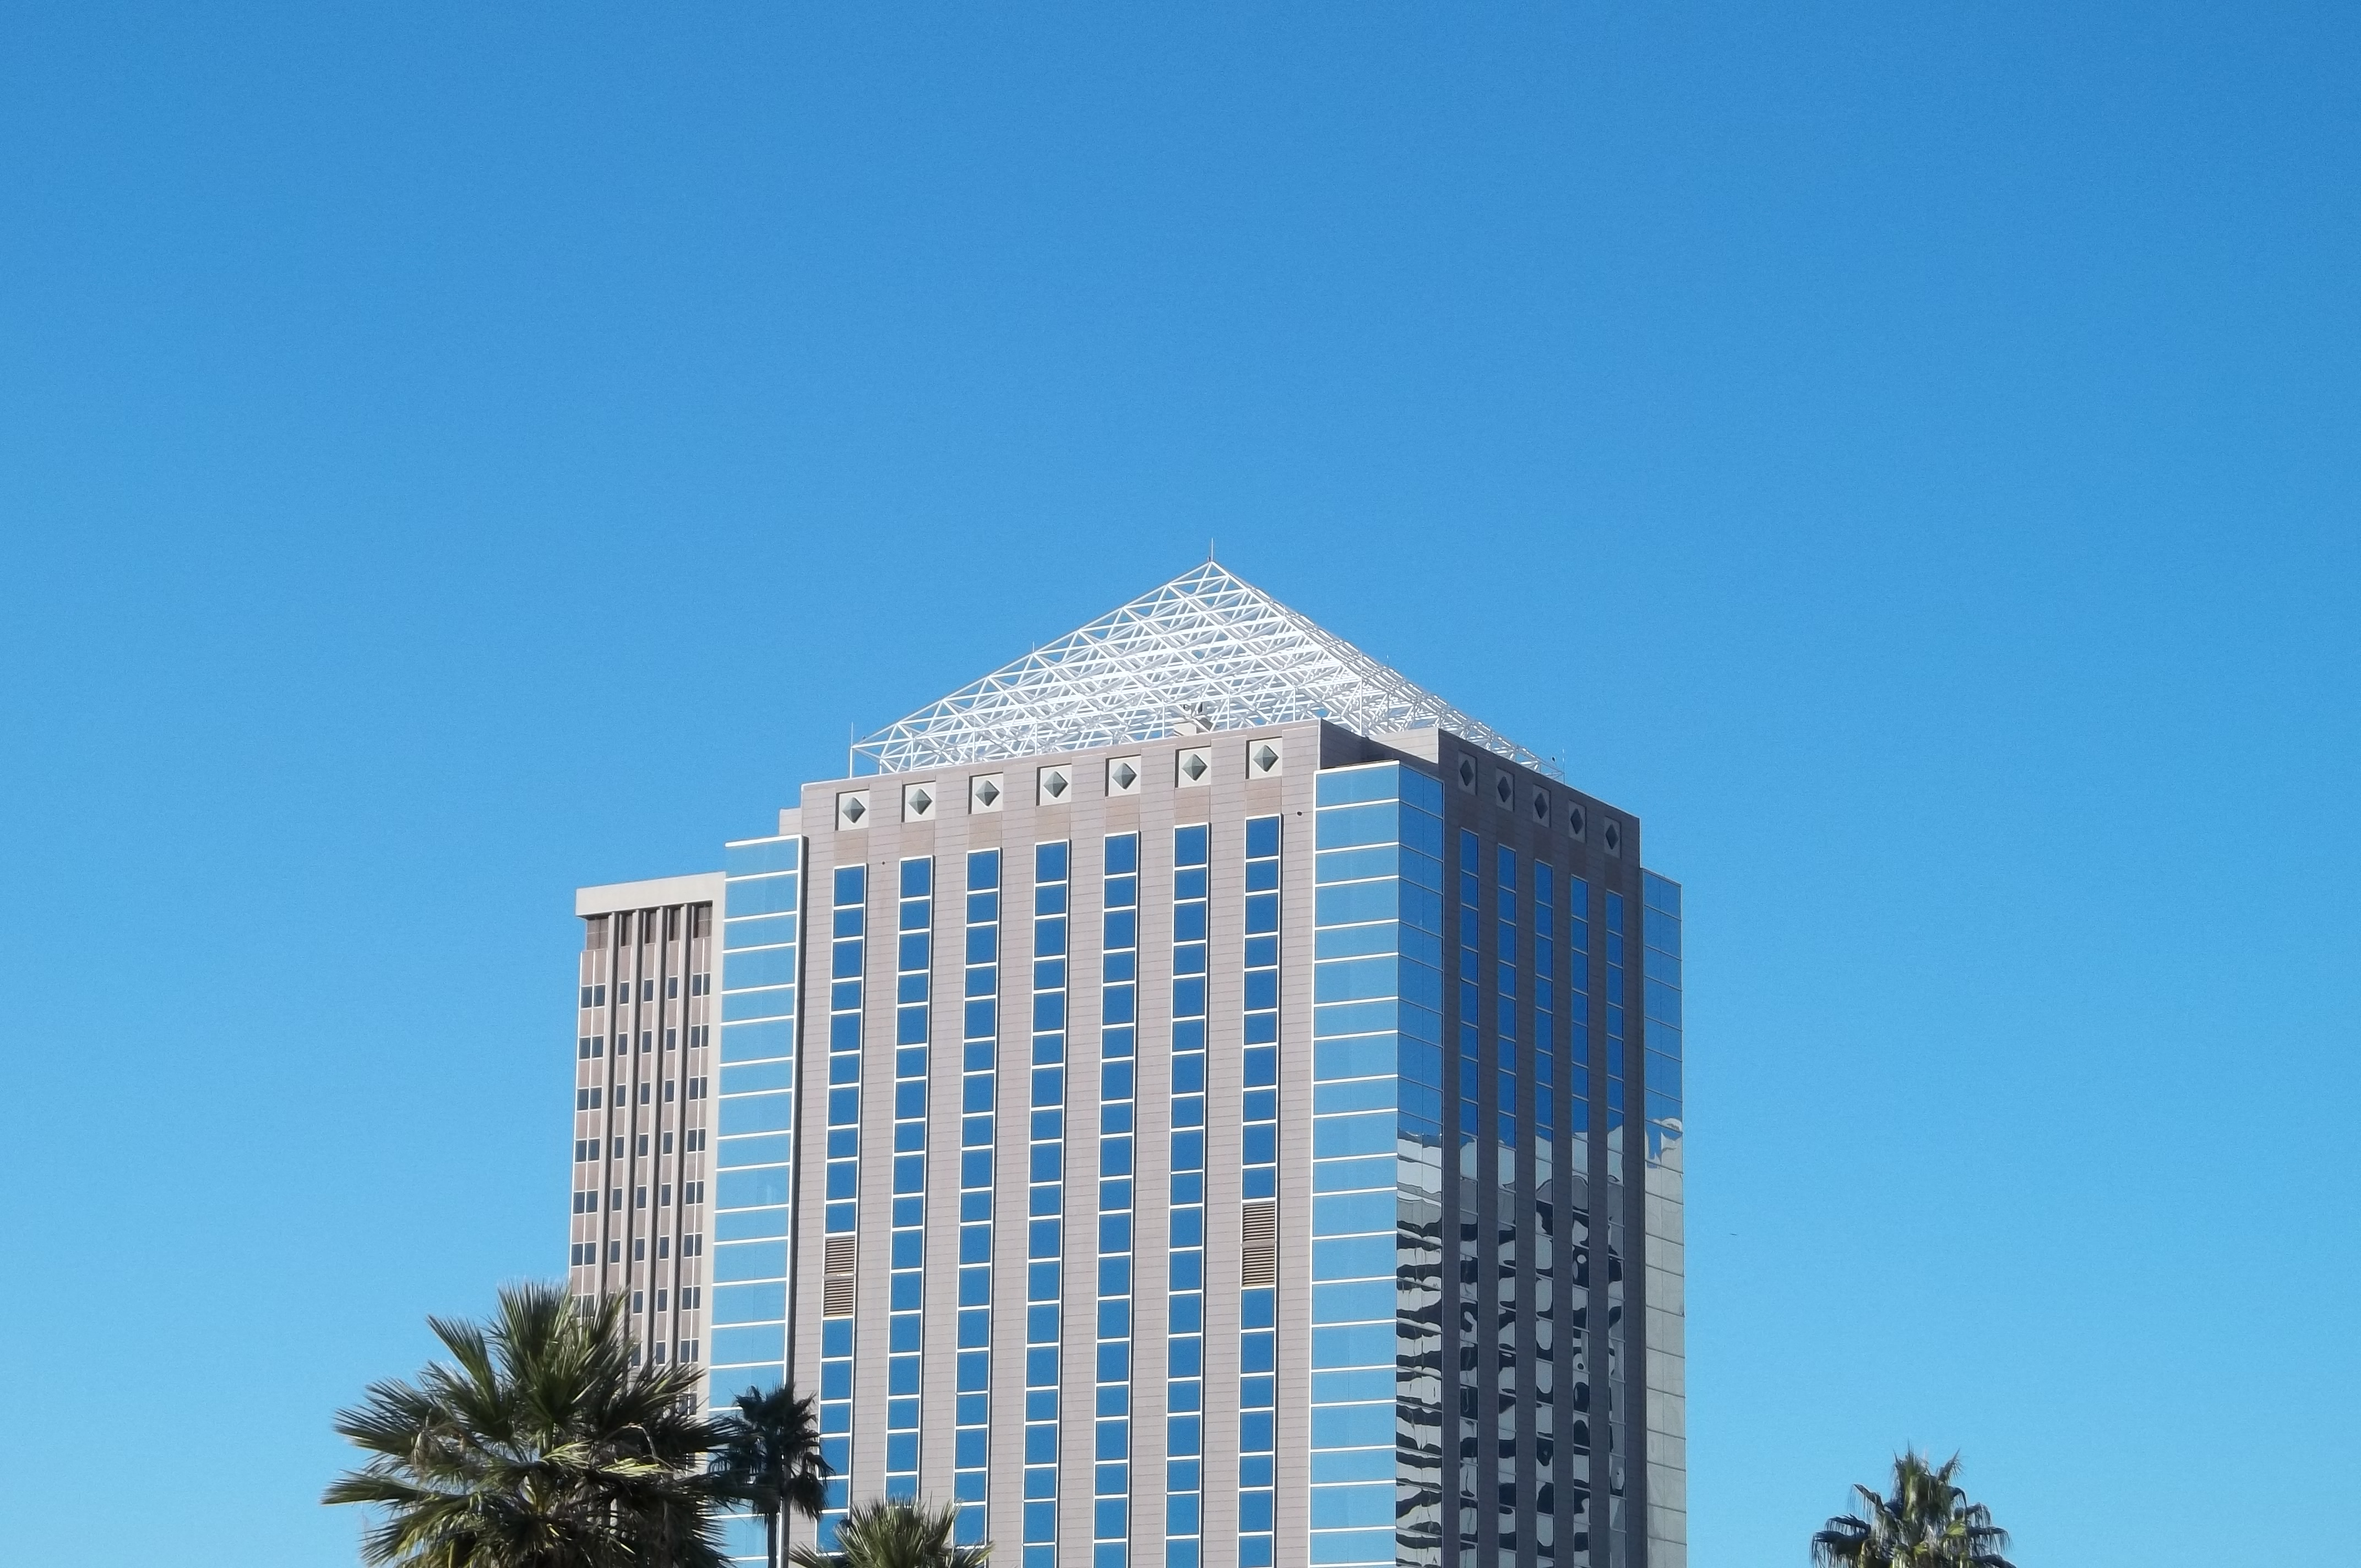 Skeletonized white pyramid atop an office building in downtown Phoenix